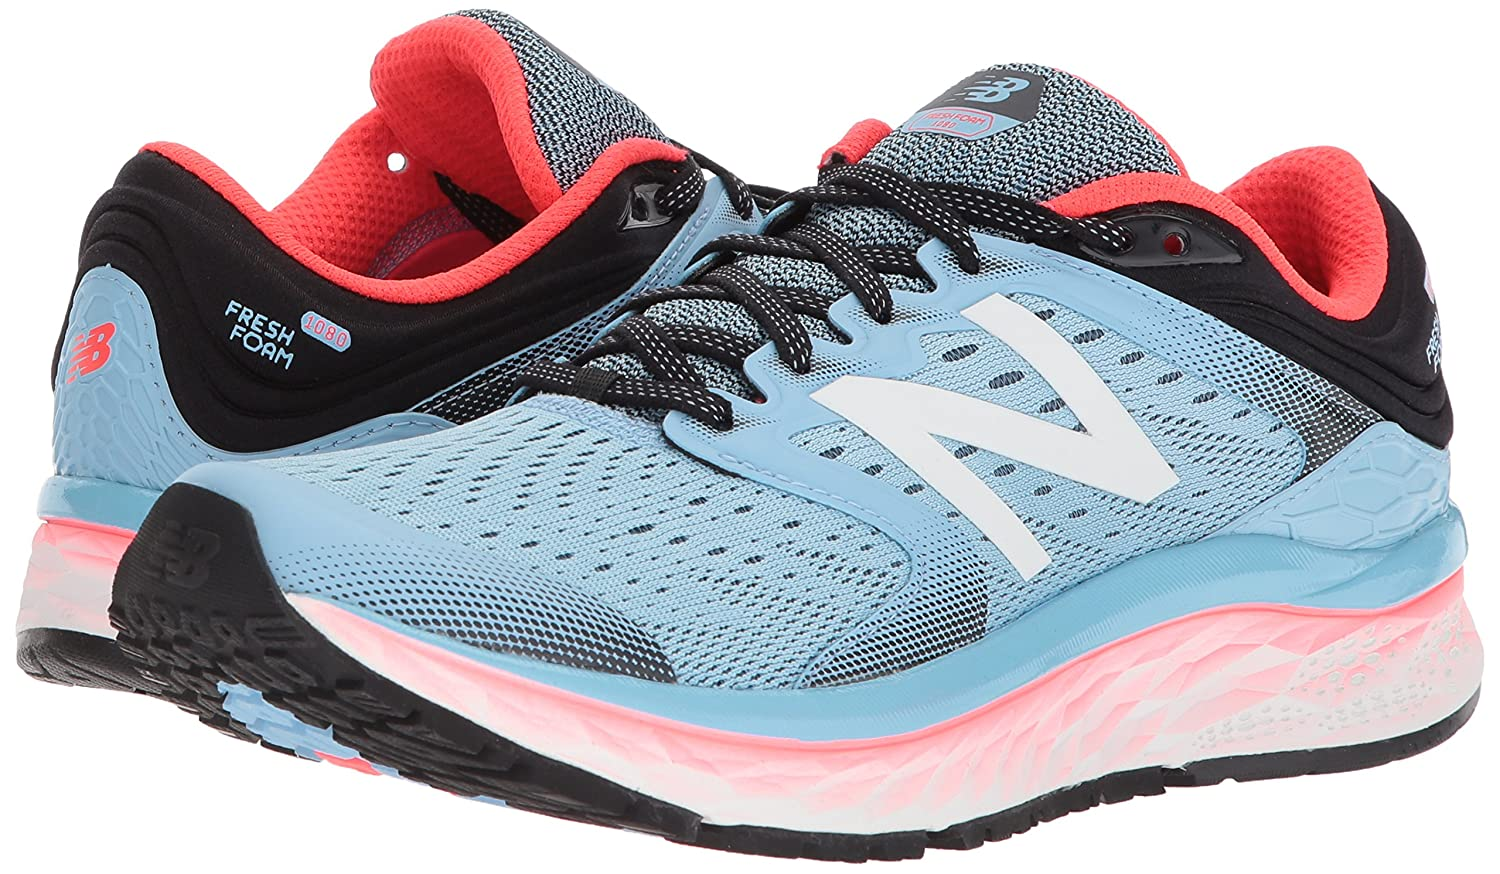 New Balance Women's 1080v8 B071JM7VYR Fresh Foam Running Shoe B071JM7VYR 1080v8 10.5 2A US|Light Blue a84210